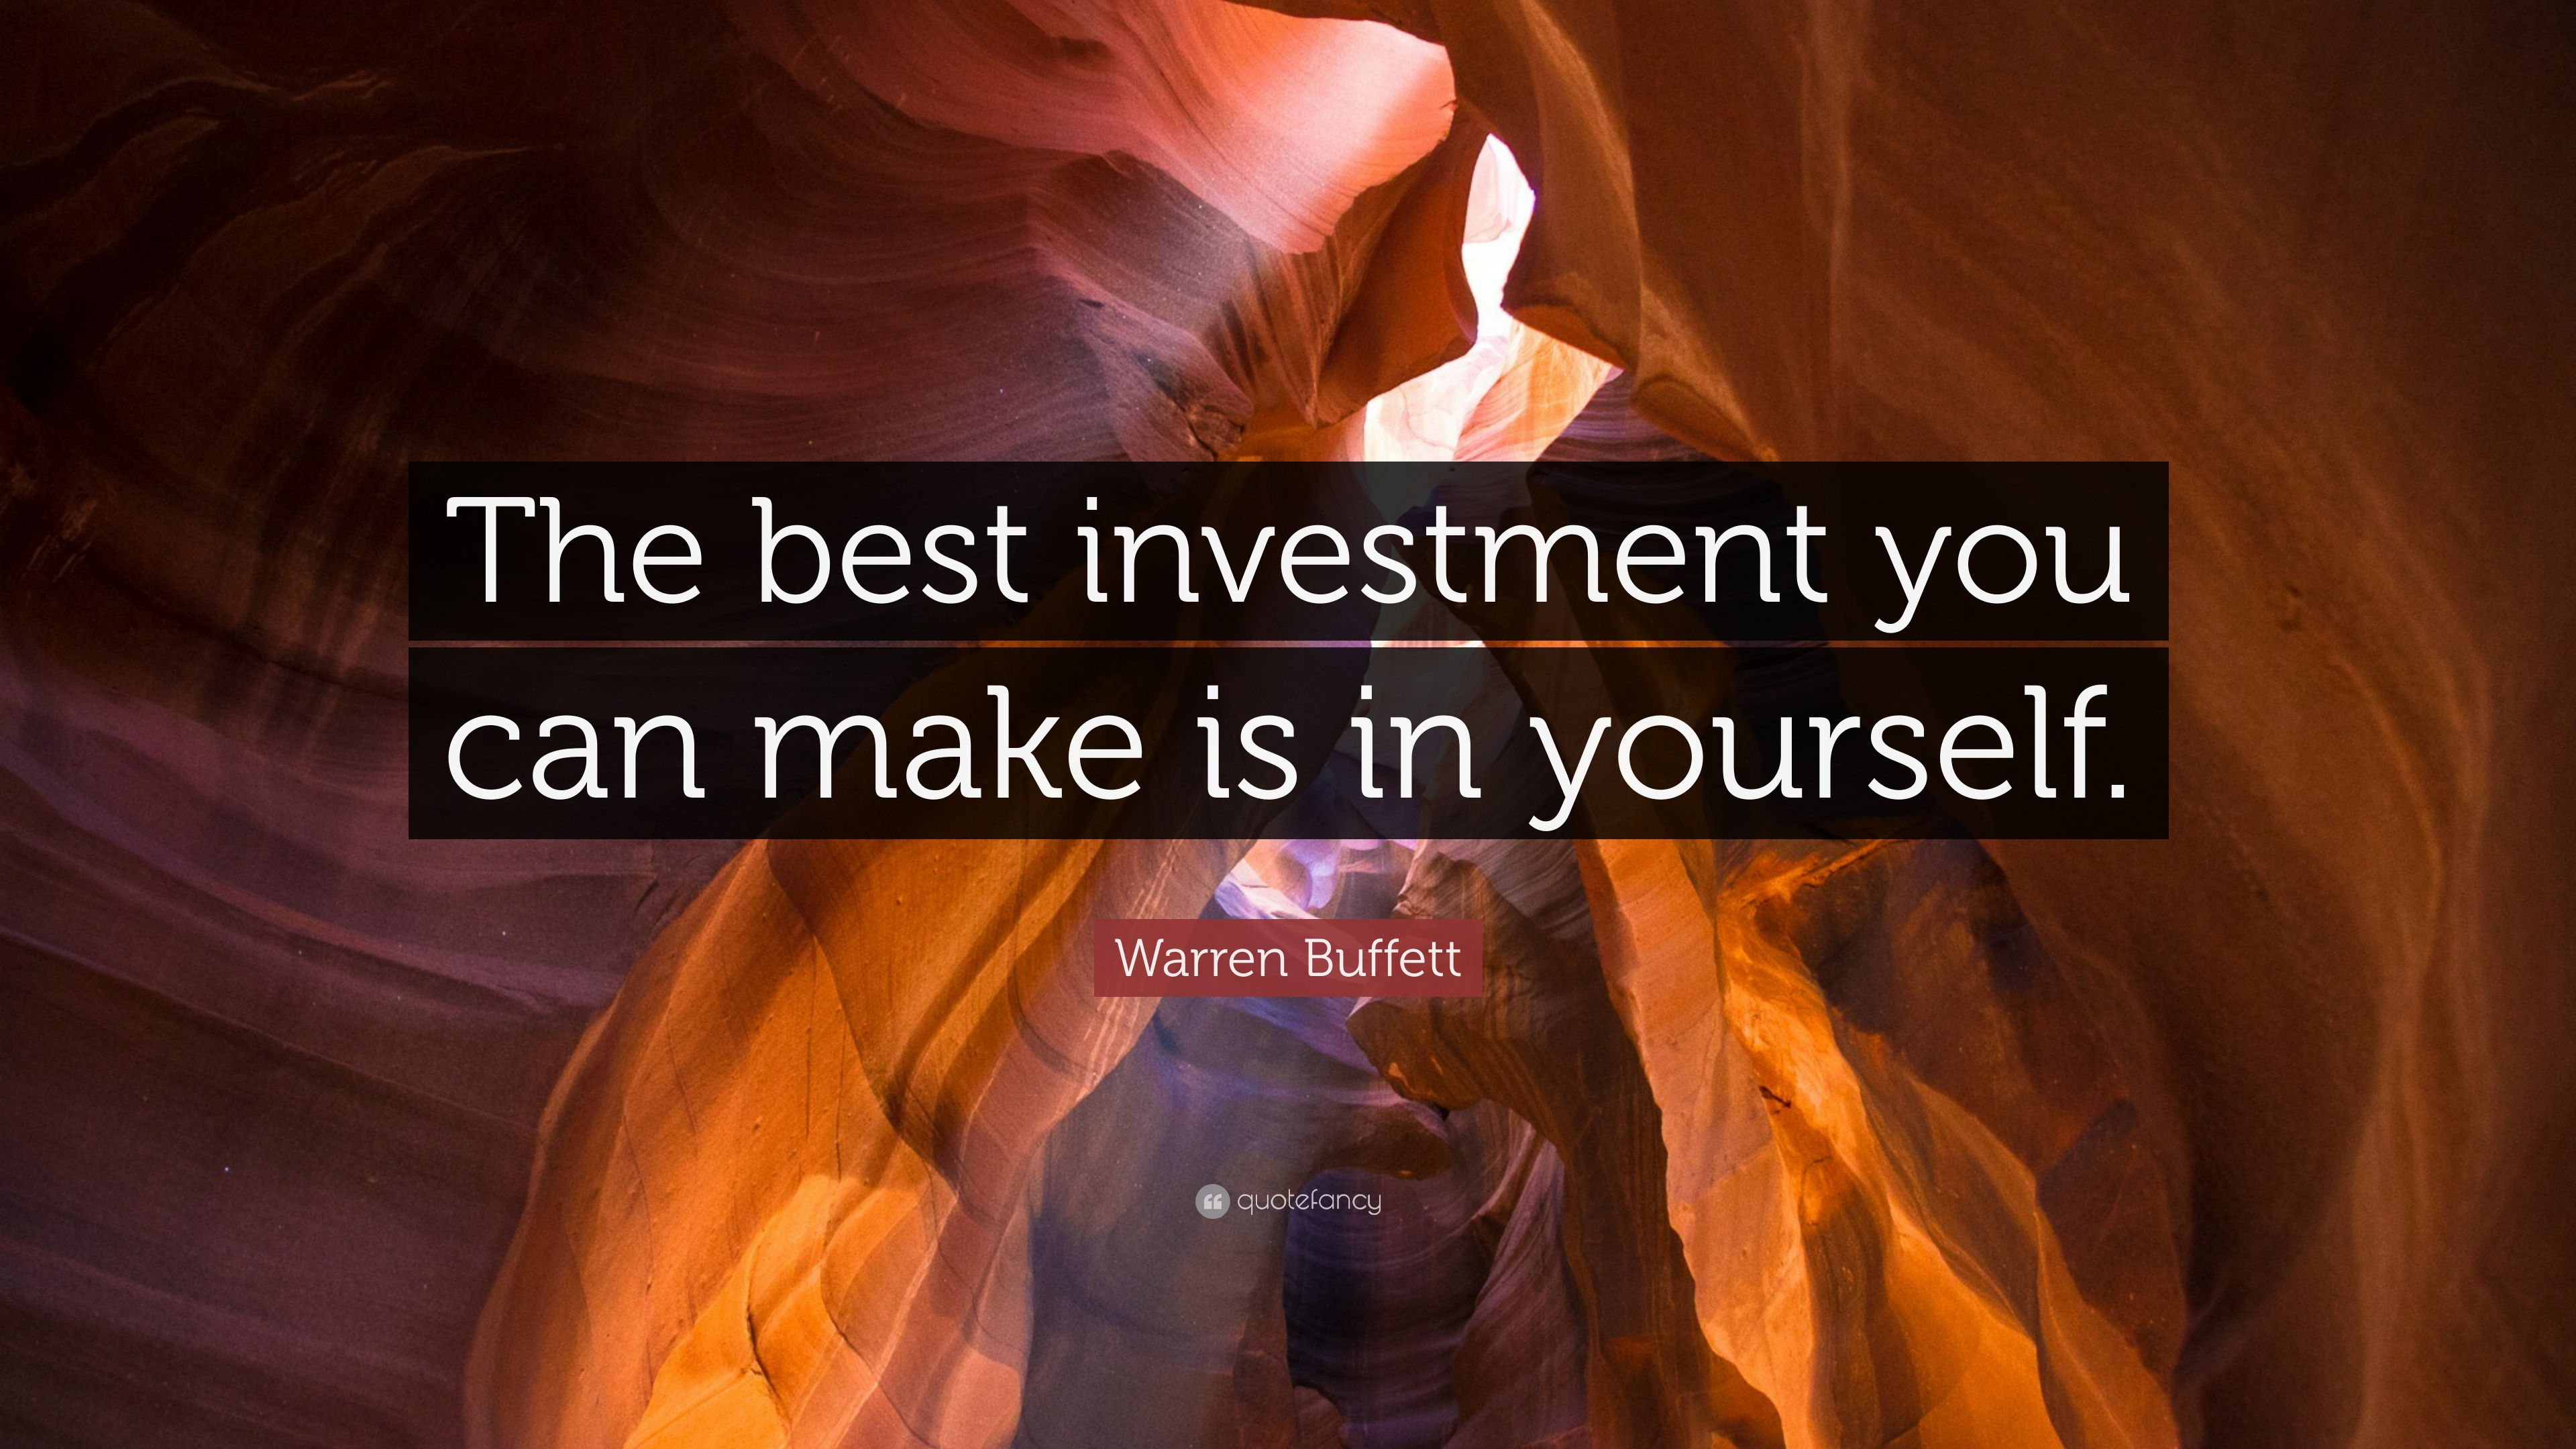 Wallpapers Of Jesus Christ With Quotes Warren Buffett Quote The Best Investment You Can Make Is